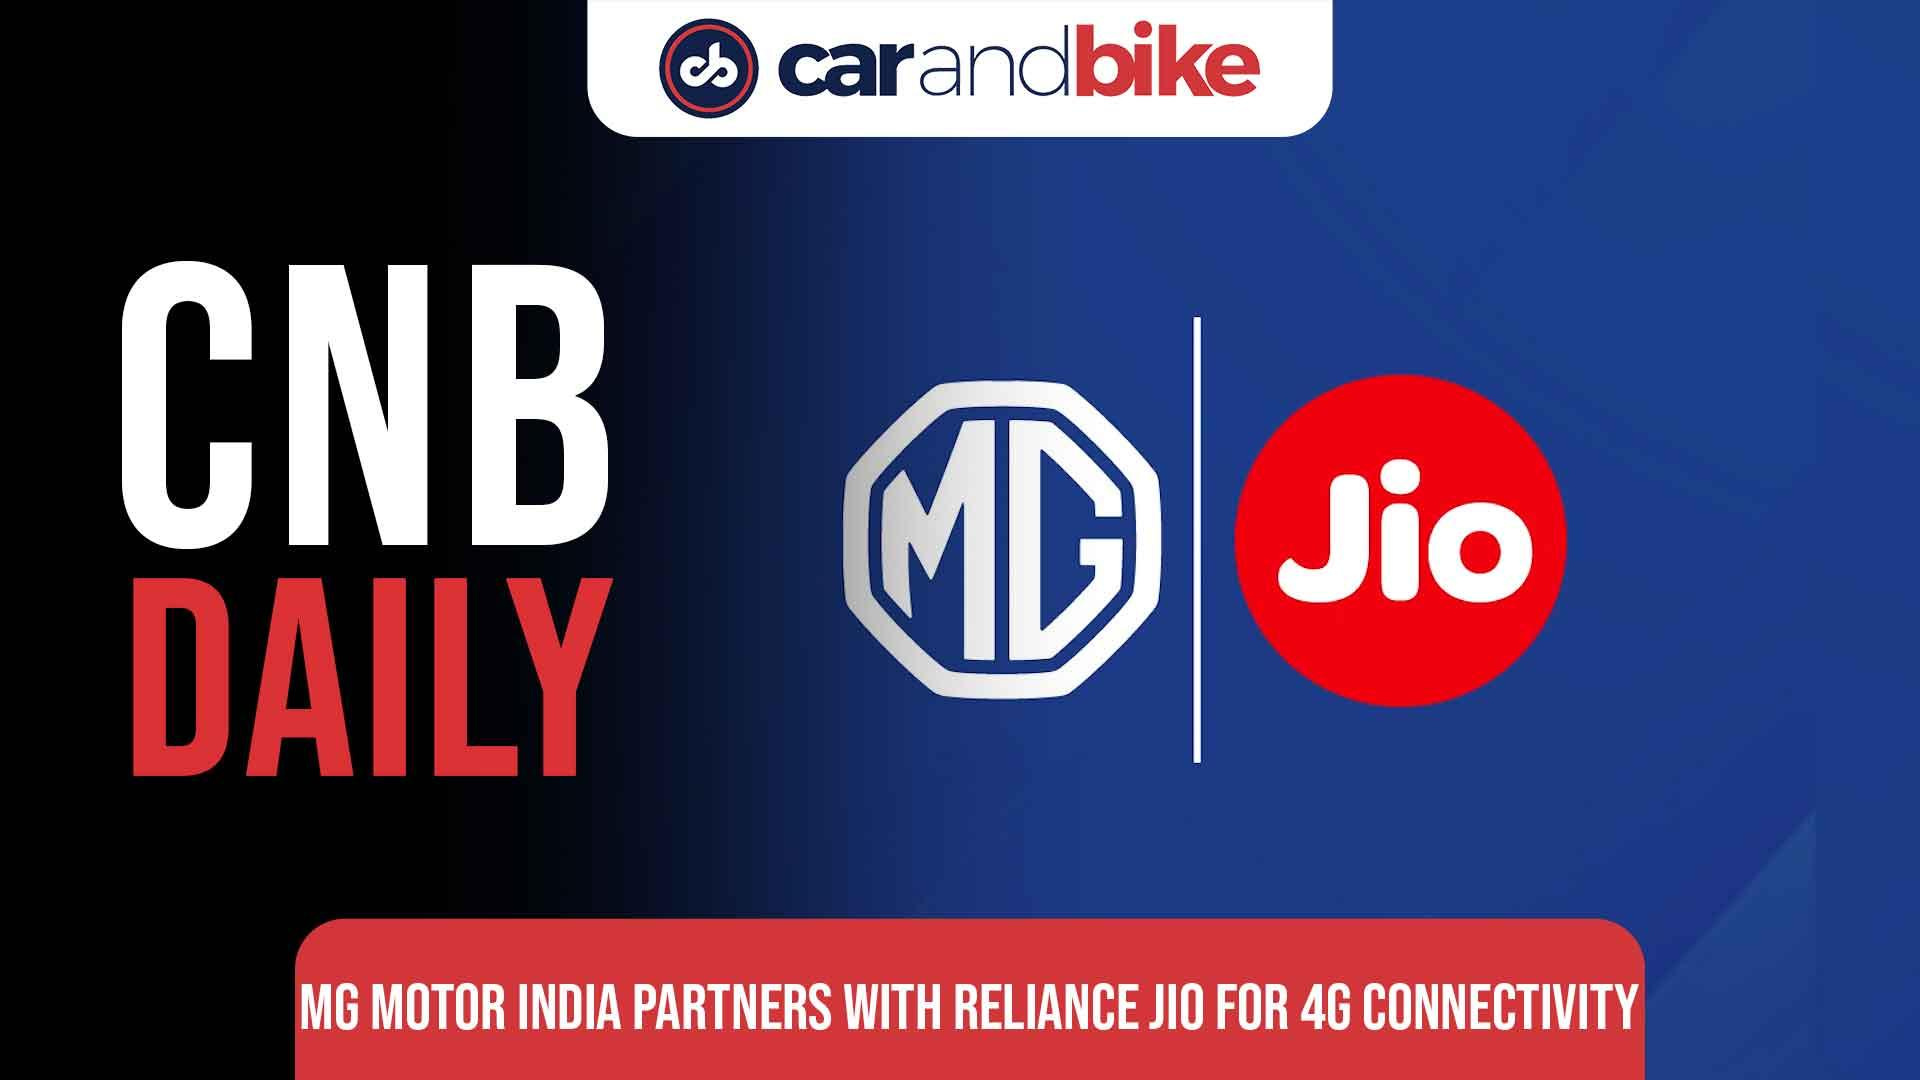 MG Motor India Partners With Reliance Jio